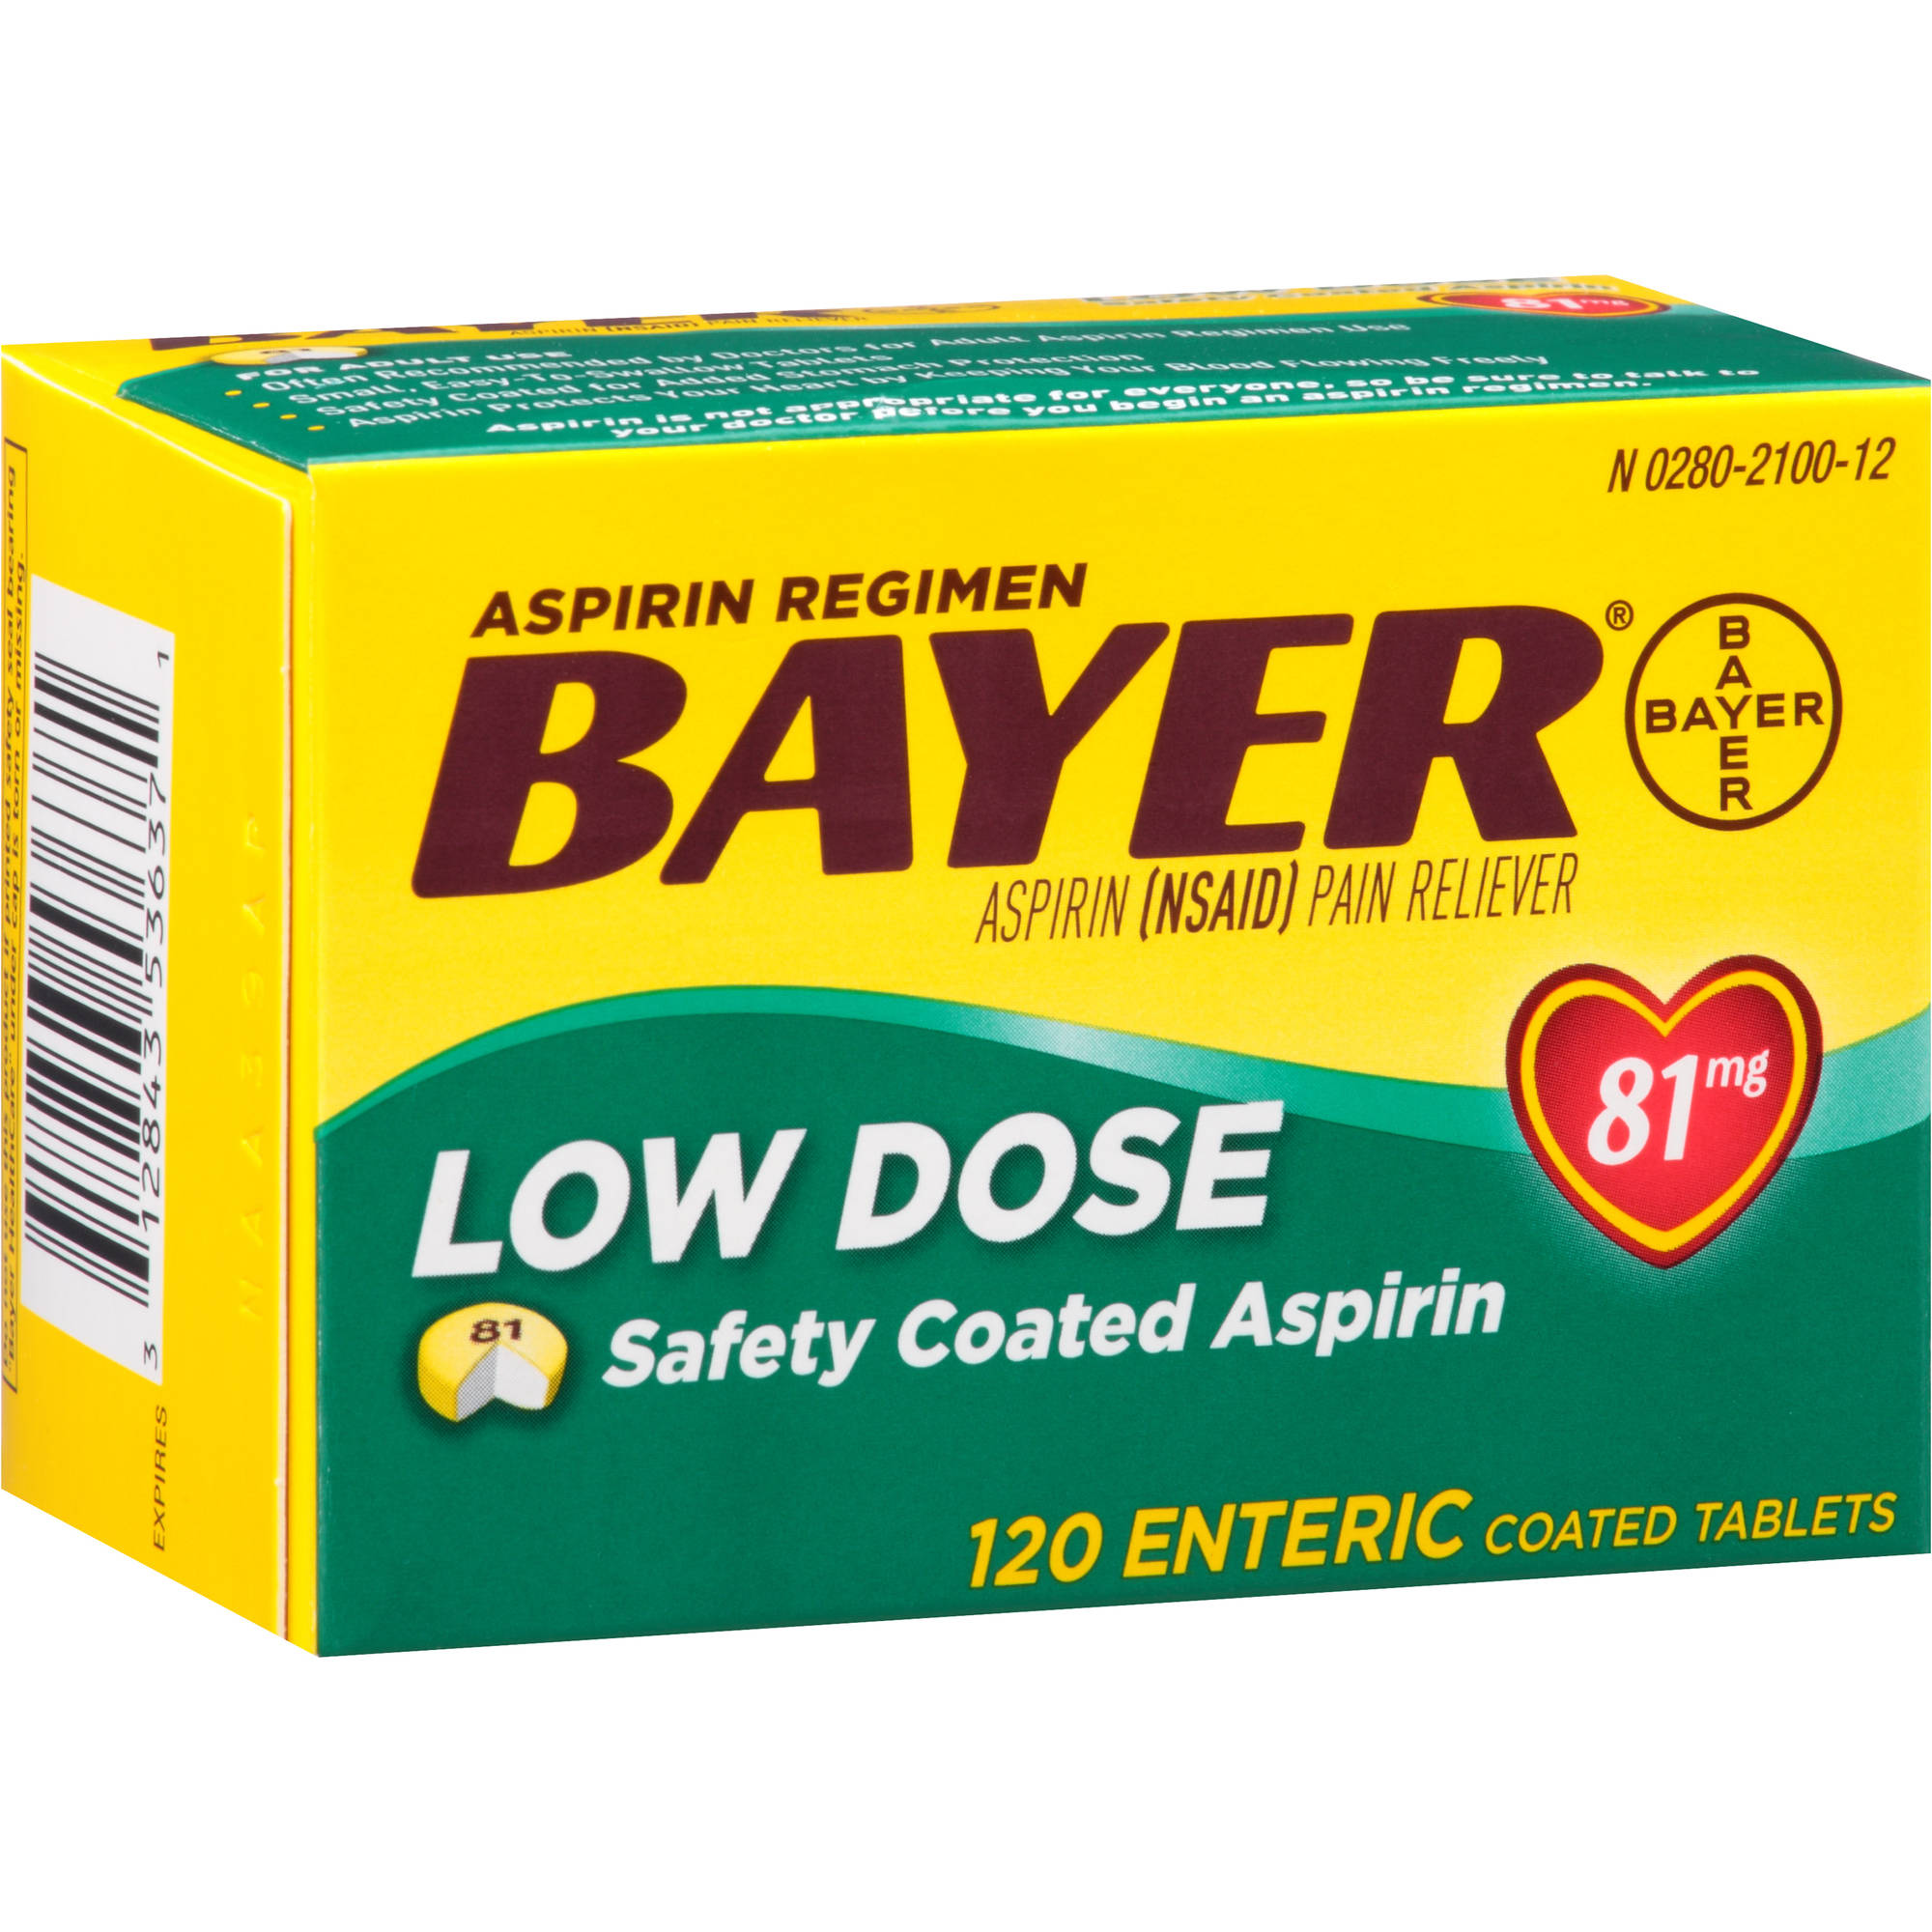 Bayer Low Dose Aspirin Enteric Coated Tablets, 81mg, 120 count